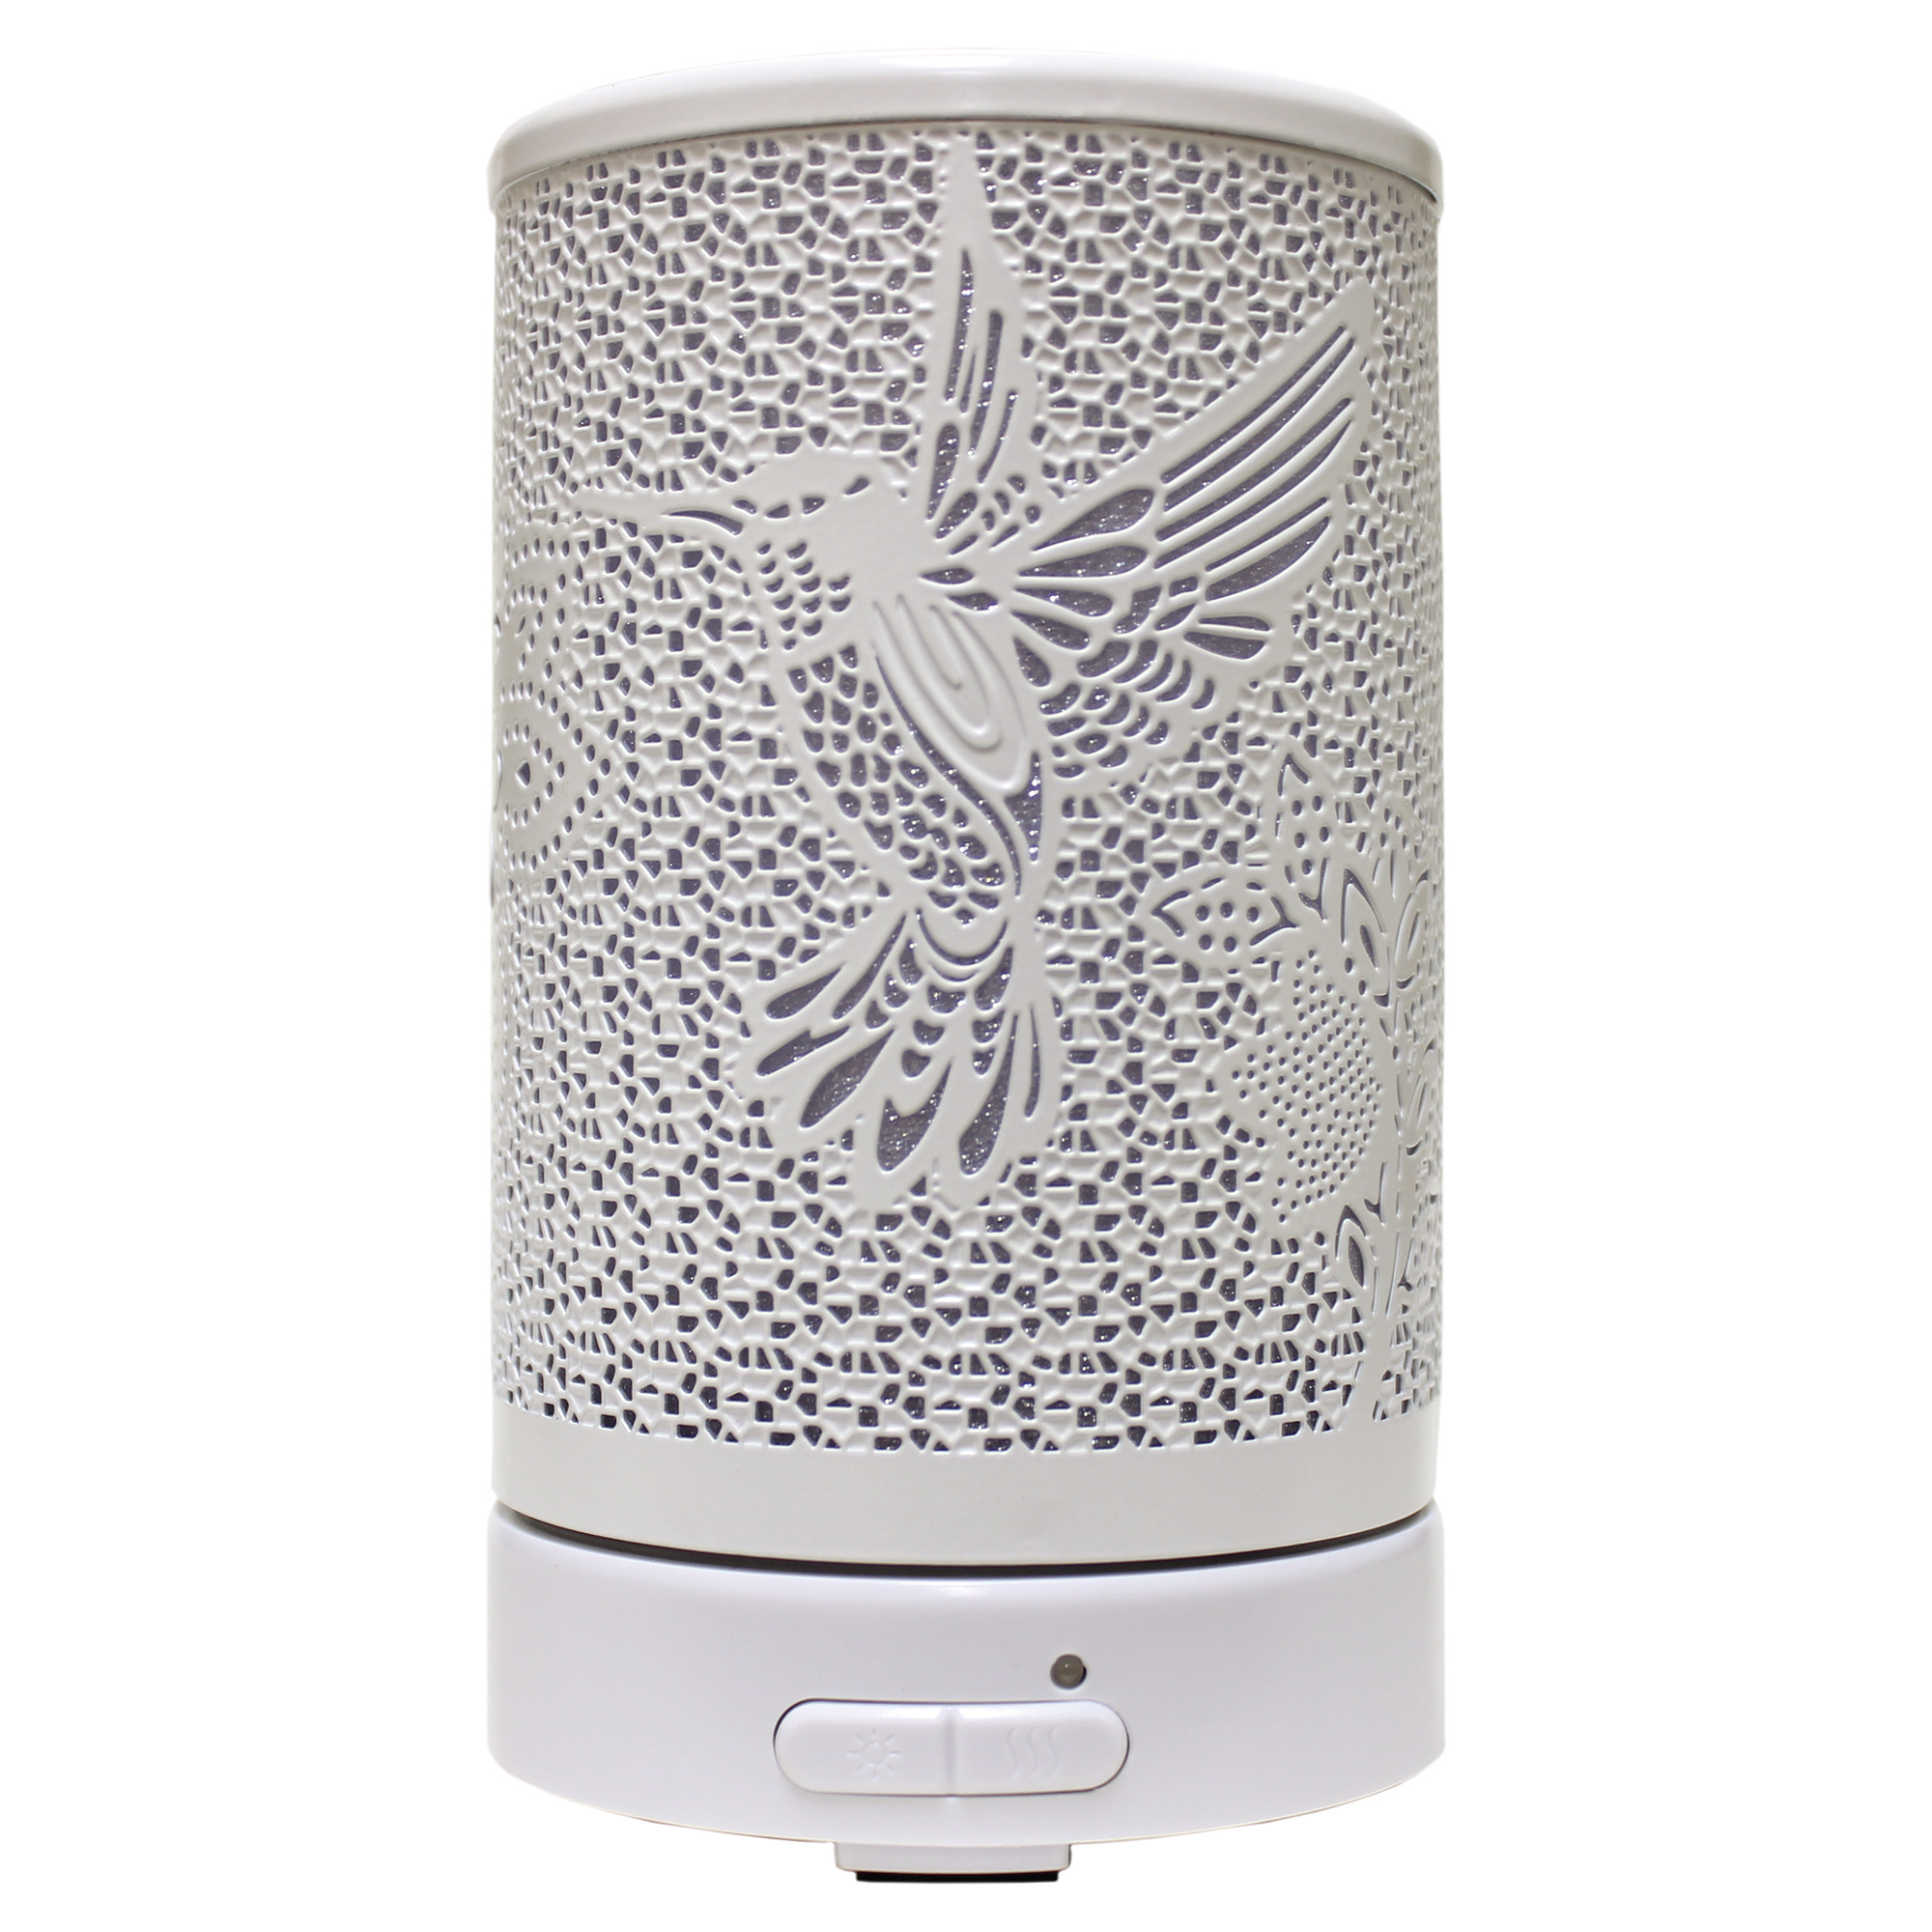 HUMMING BIRD ULTRASONIC OIL DIFFUSERUPC# 674623018072